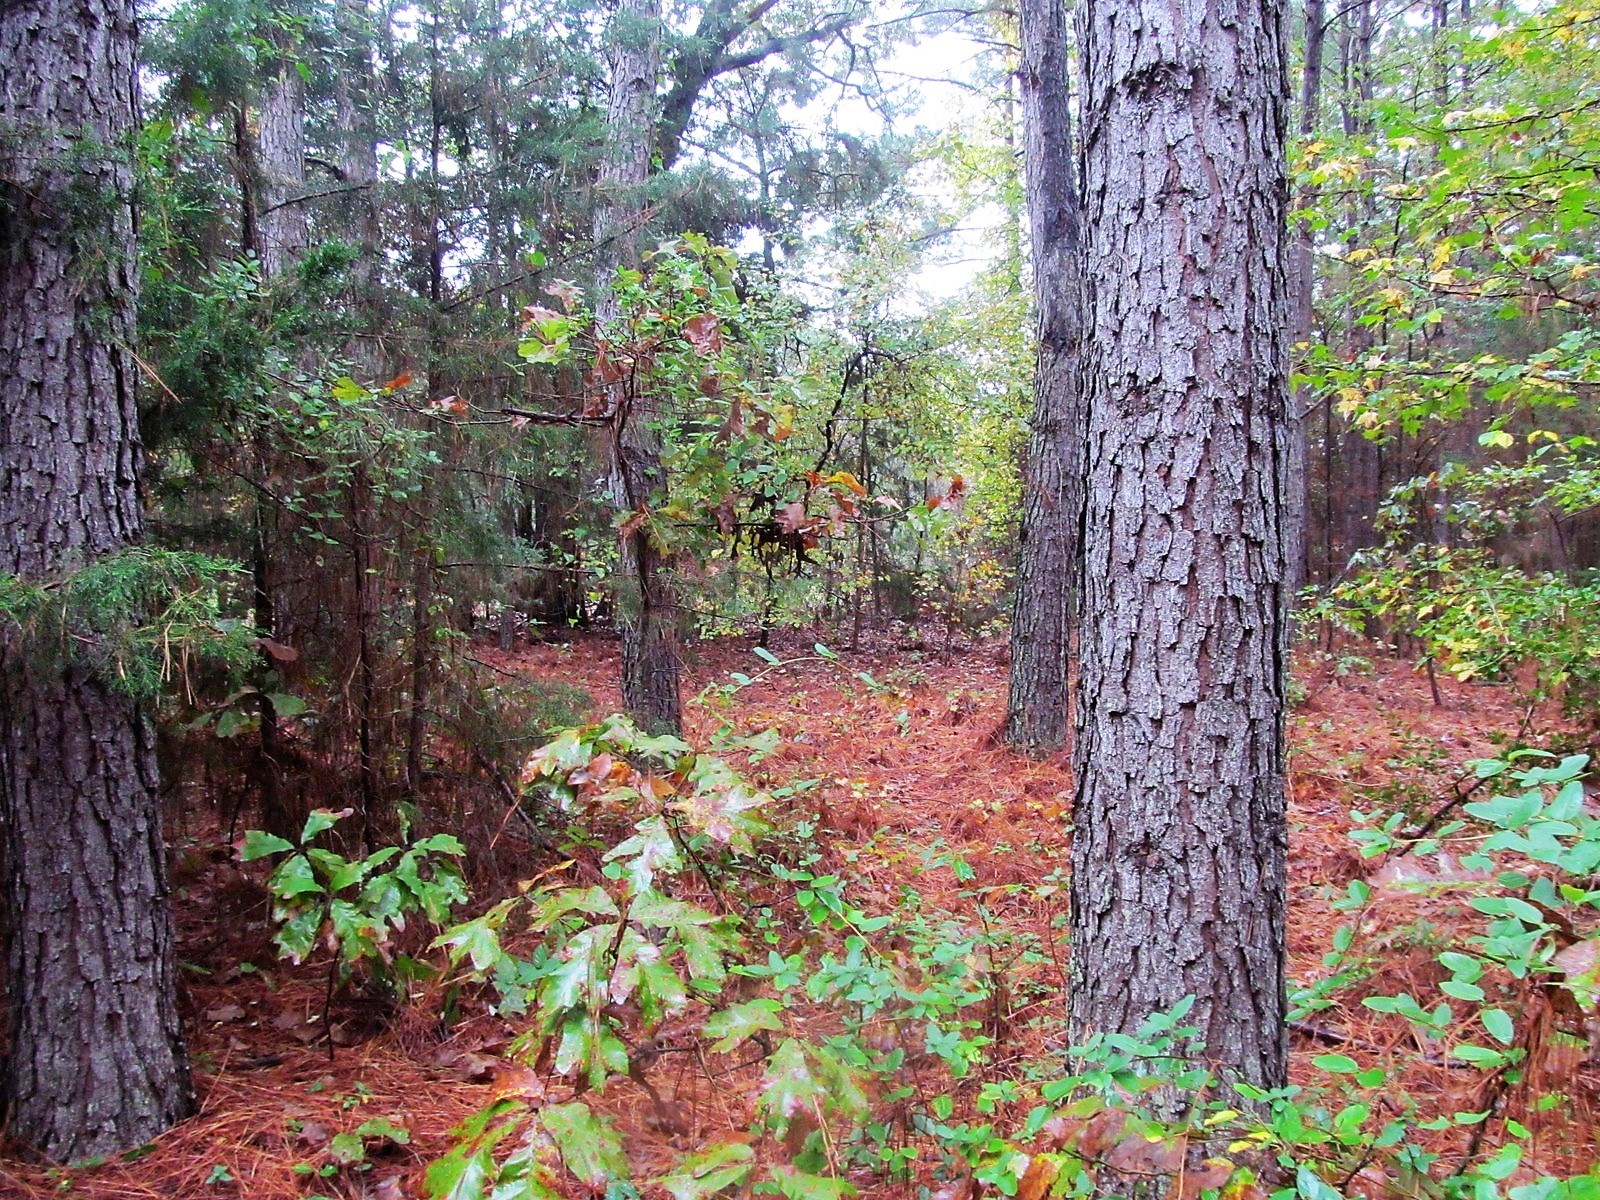 20 WOODED ACRES IN WOOD AND UPSHUR COUNTIES - EAST TEXAS